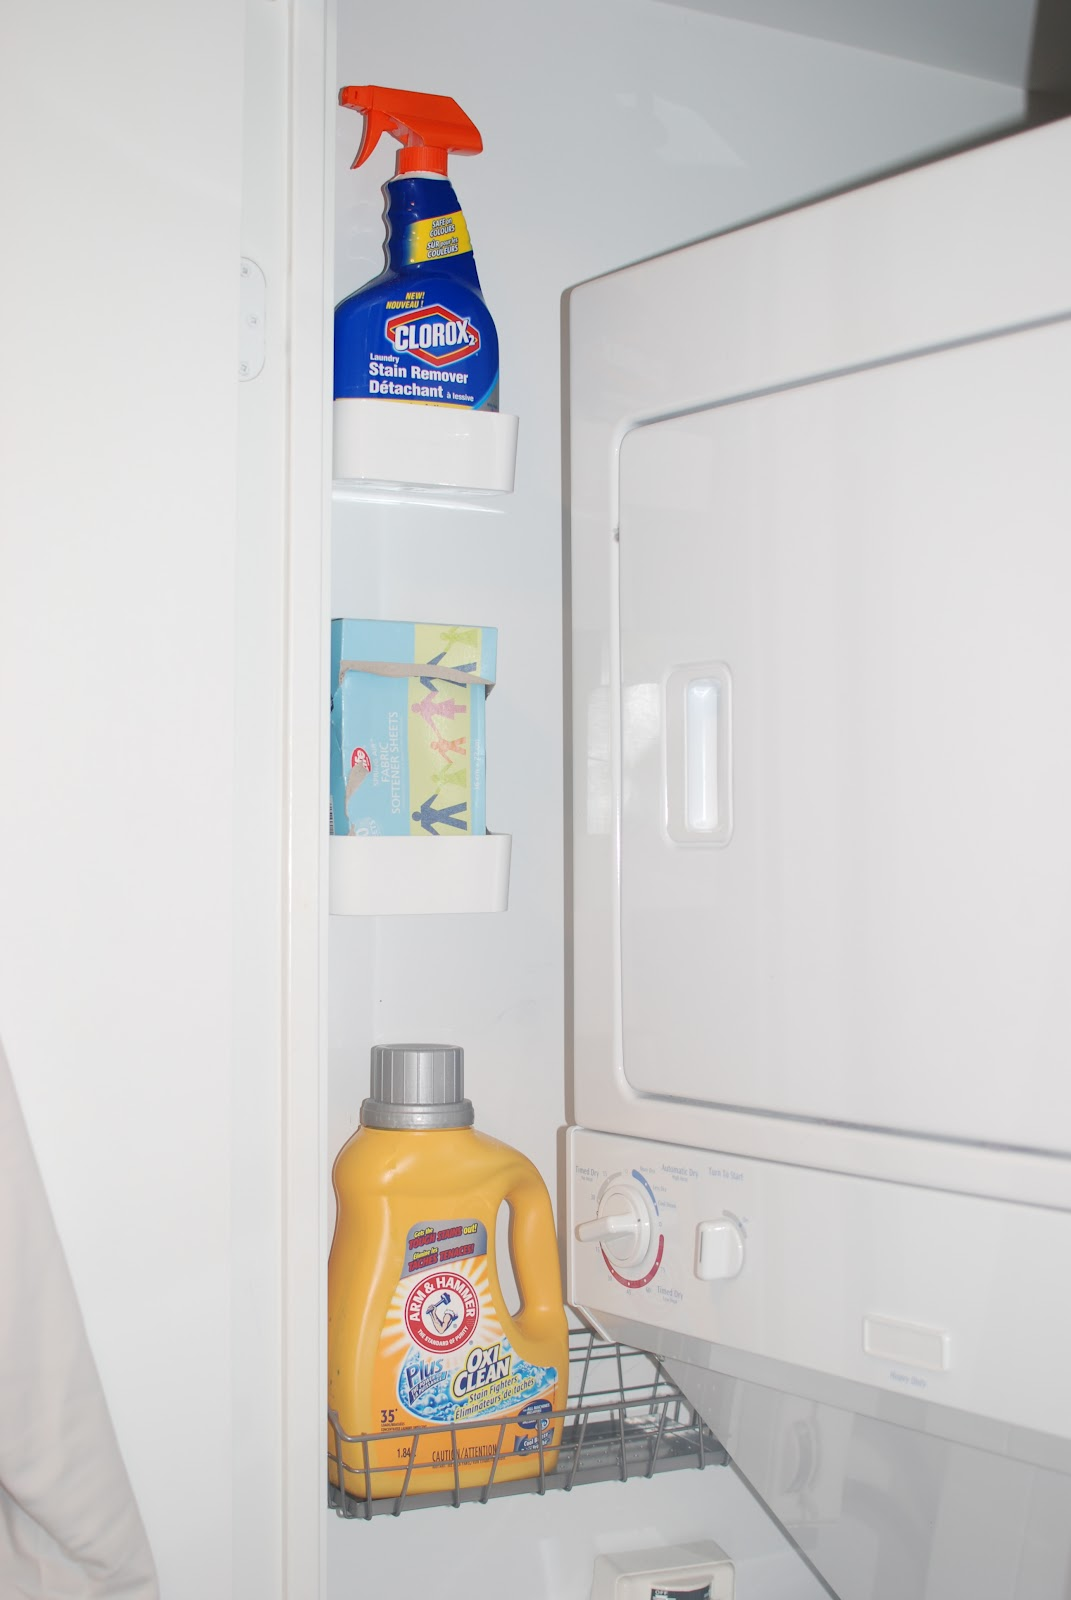 I love that this clever person really used the small space that she had. Tiny shelves hold the items she needs easy access to while doing laundry. Found on Waffling Blog.